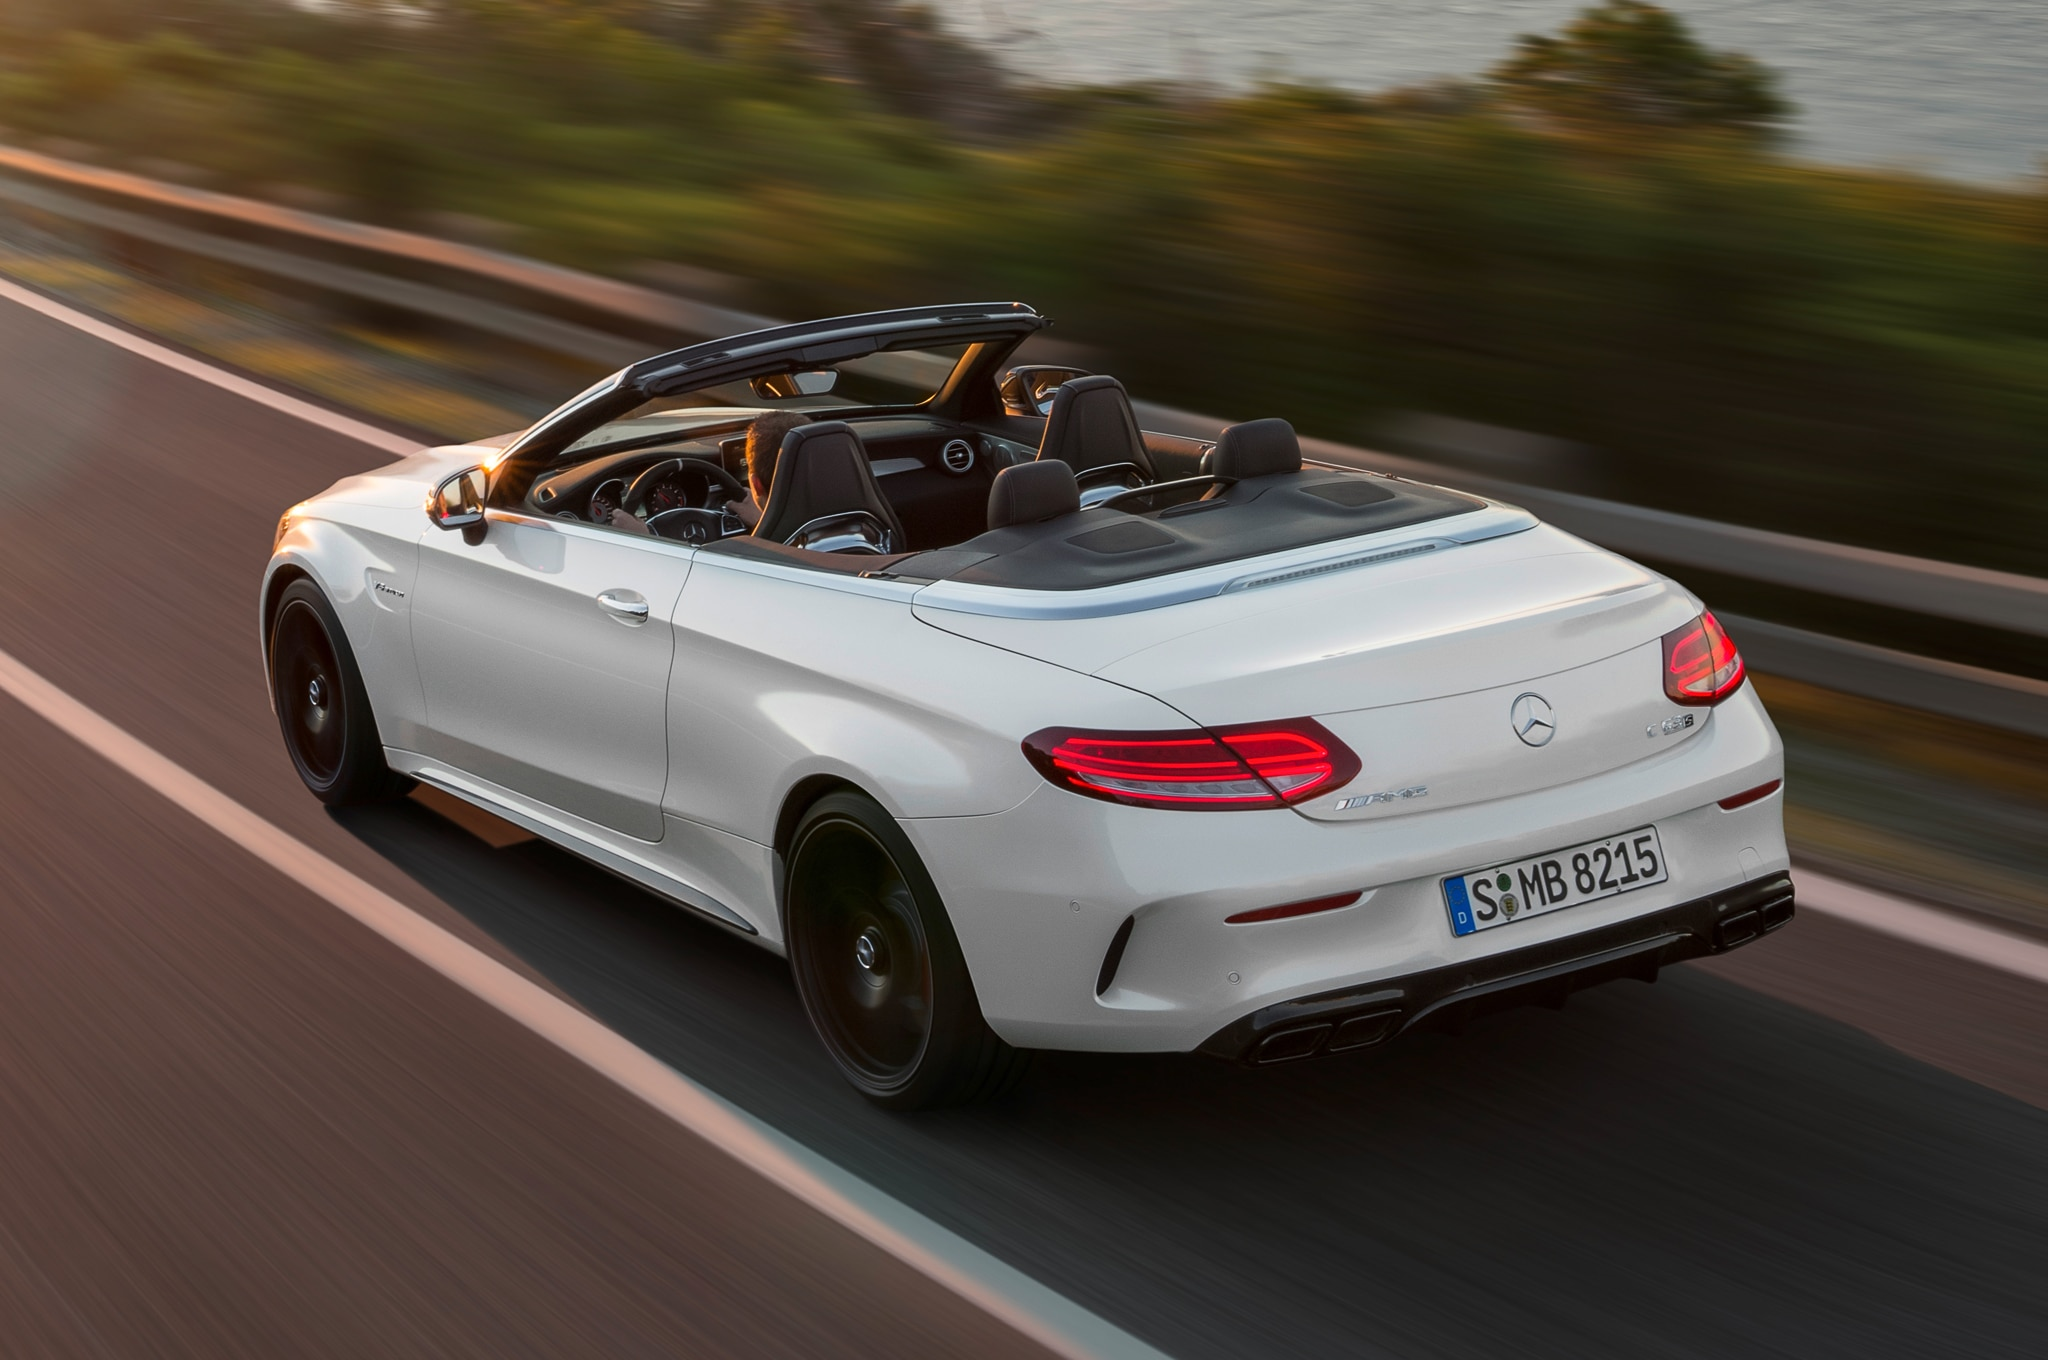 2017 Mercedes-AMG C63 Cabriolet Revealed at 2016 New York Auto Show